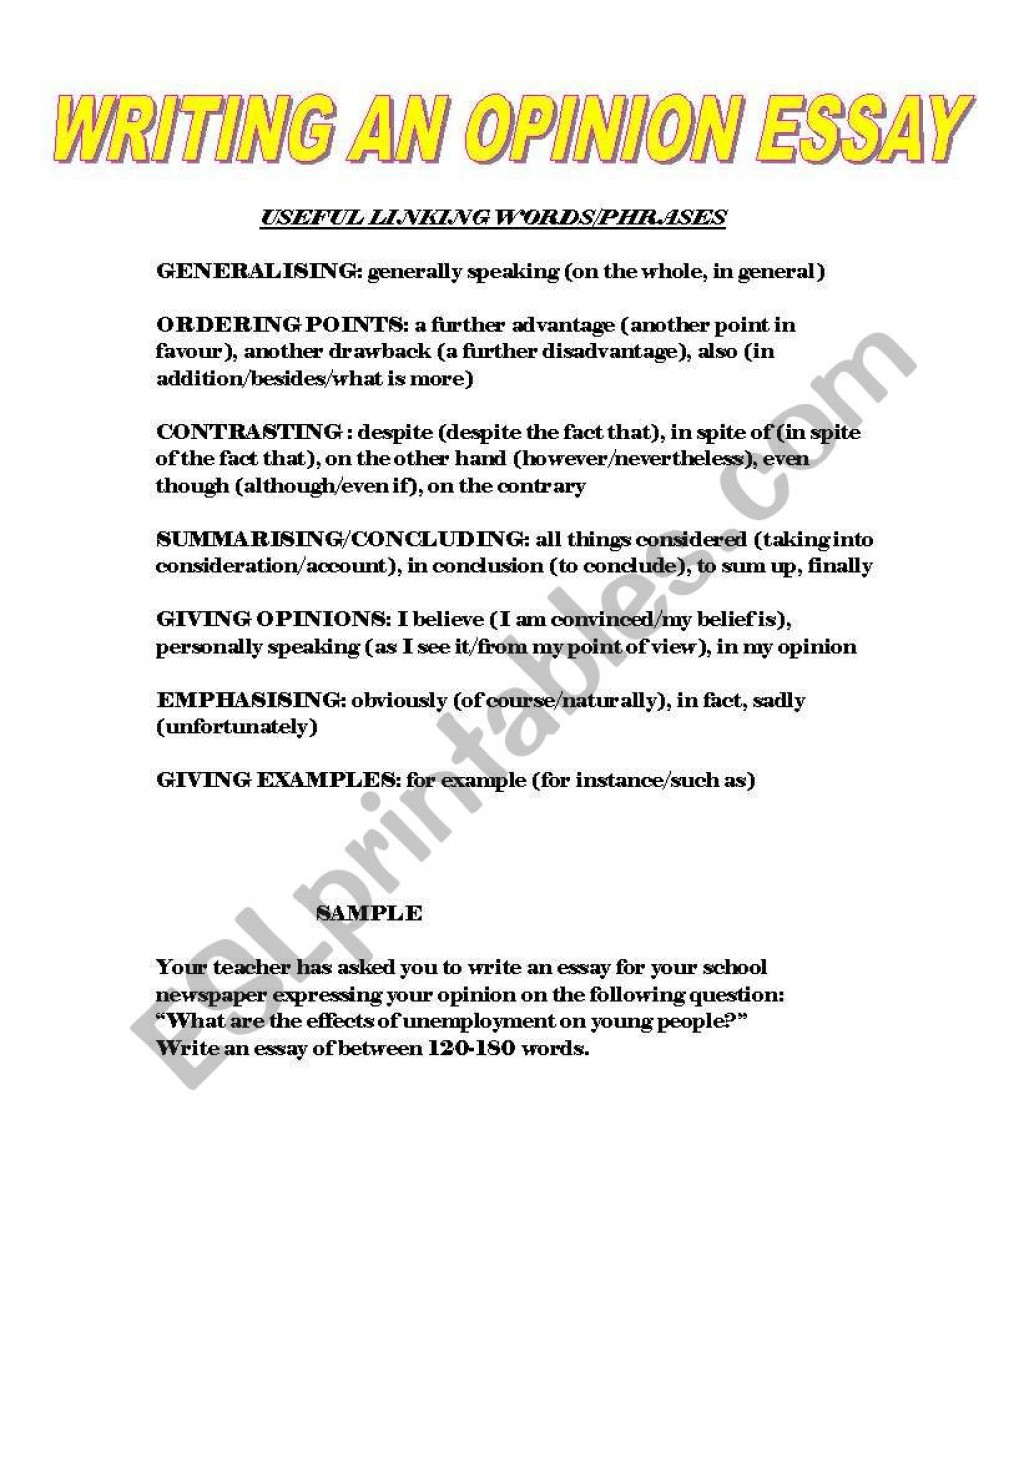 014 49469 1 Writing An Essay Example Magnificent Opinion Prompts 6th Grade Examples 3rd Large